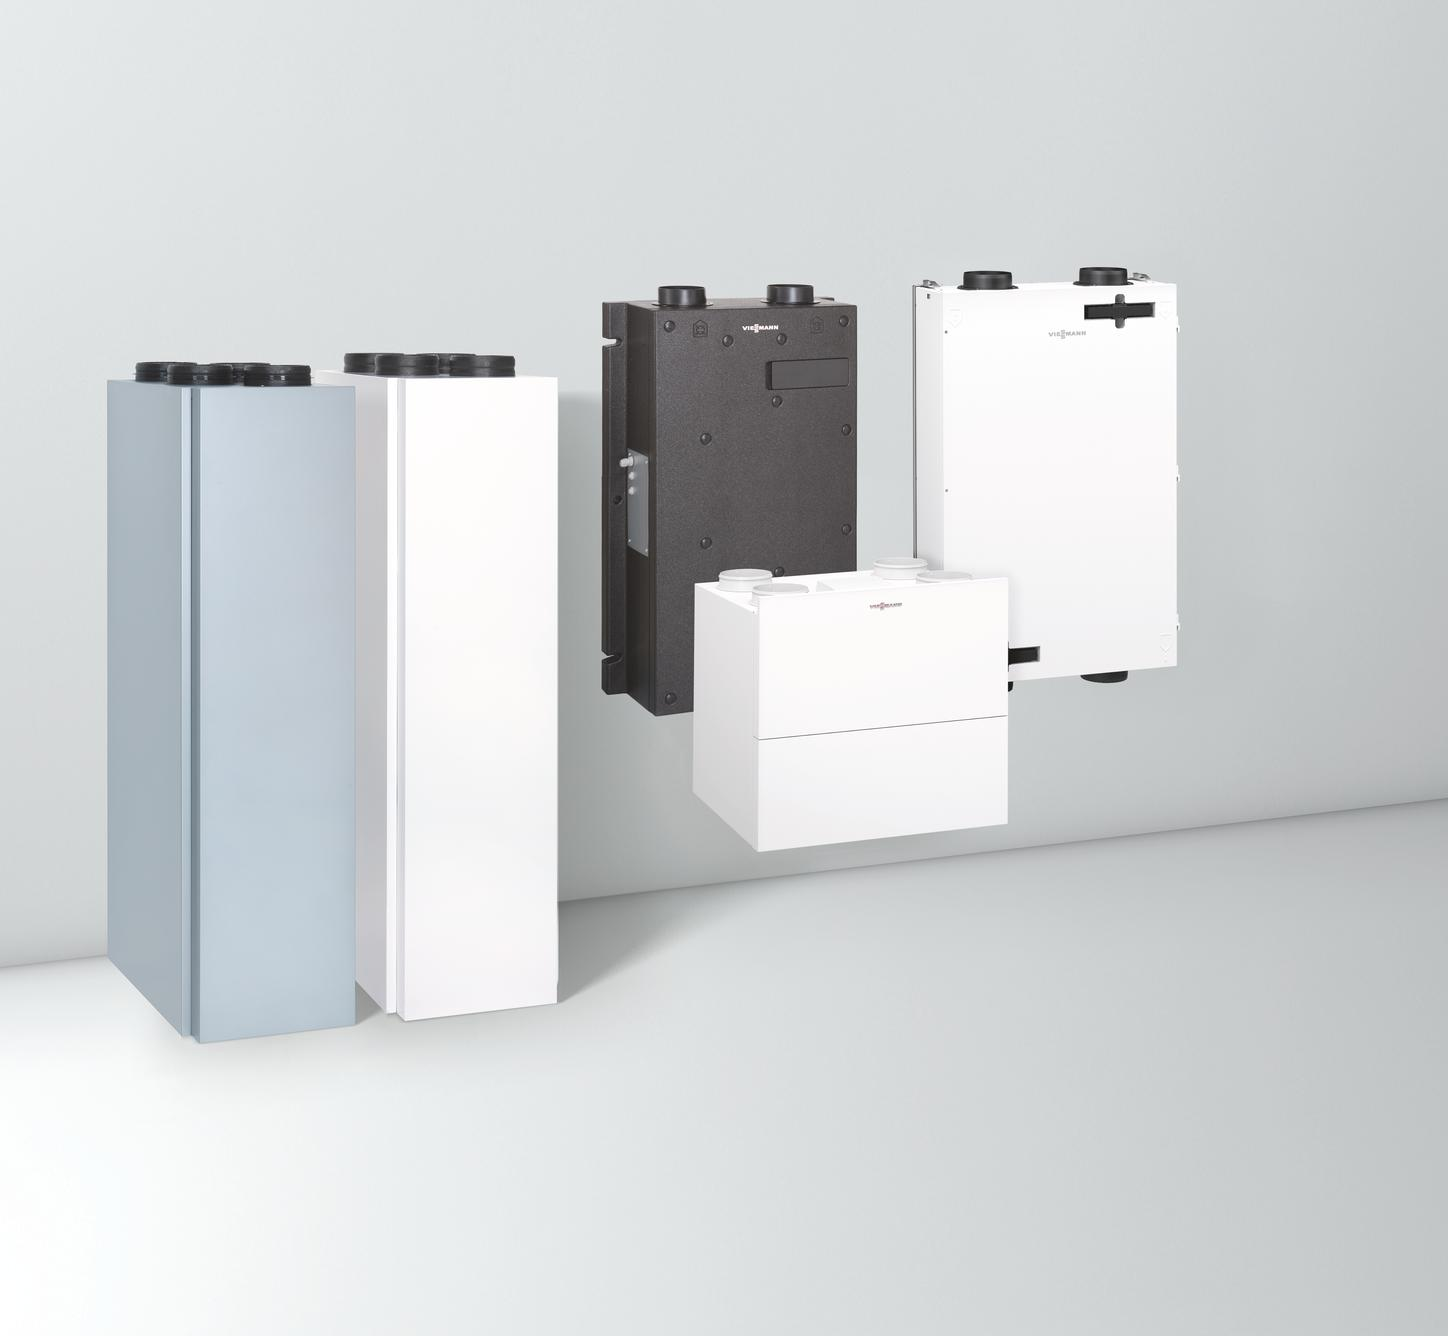 The image shows the Viessmann ViAir products.